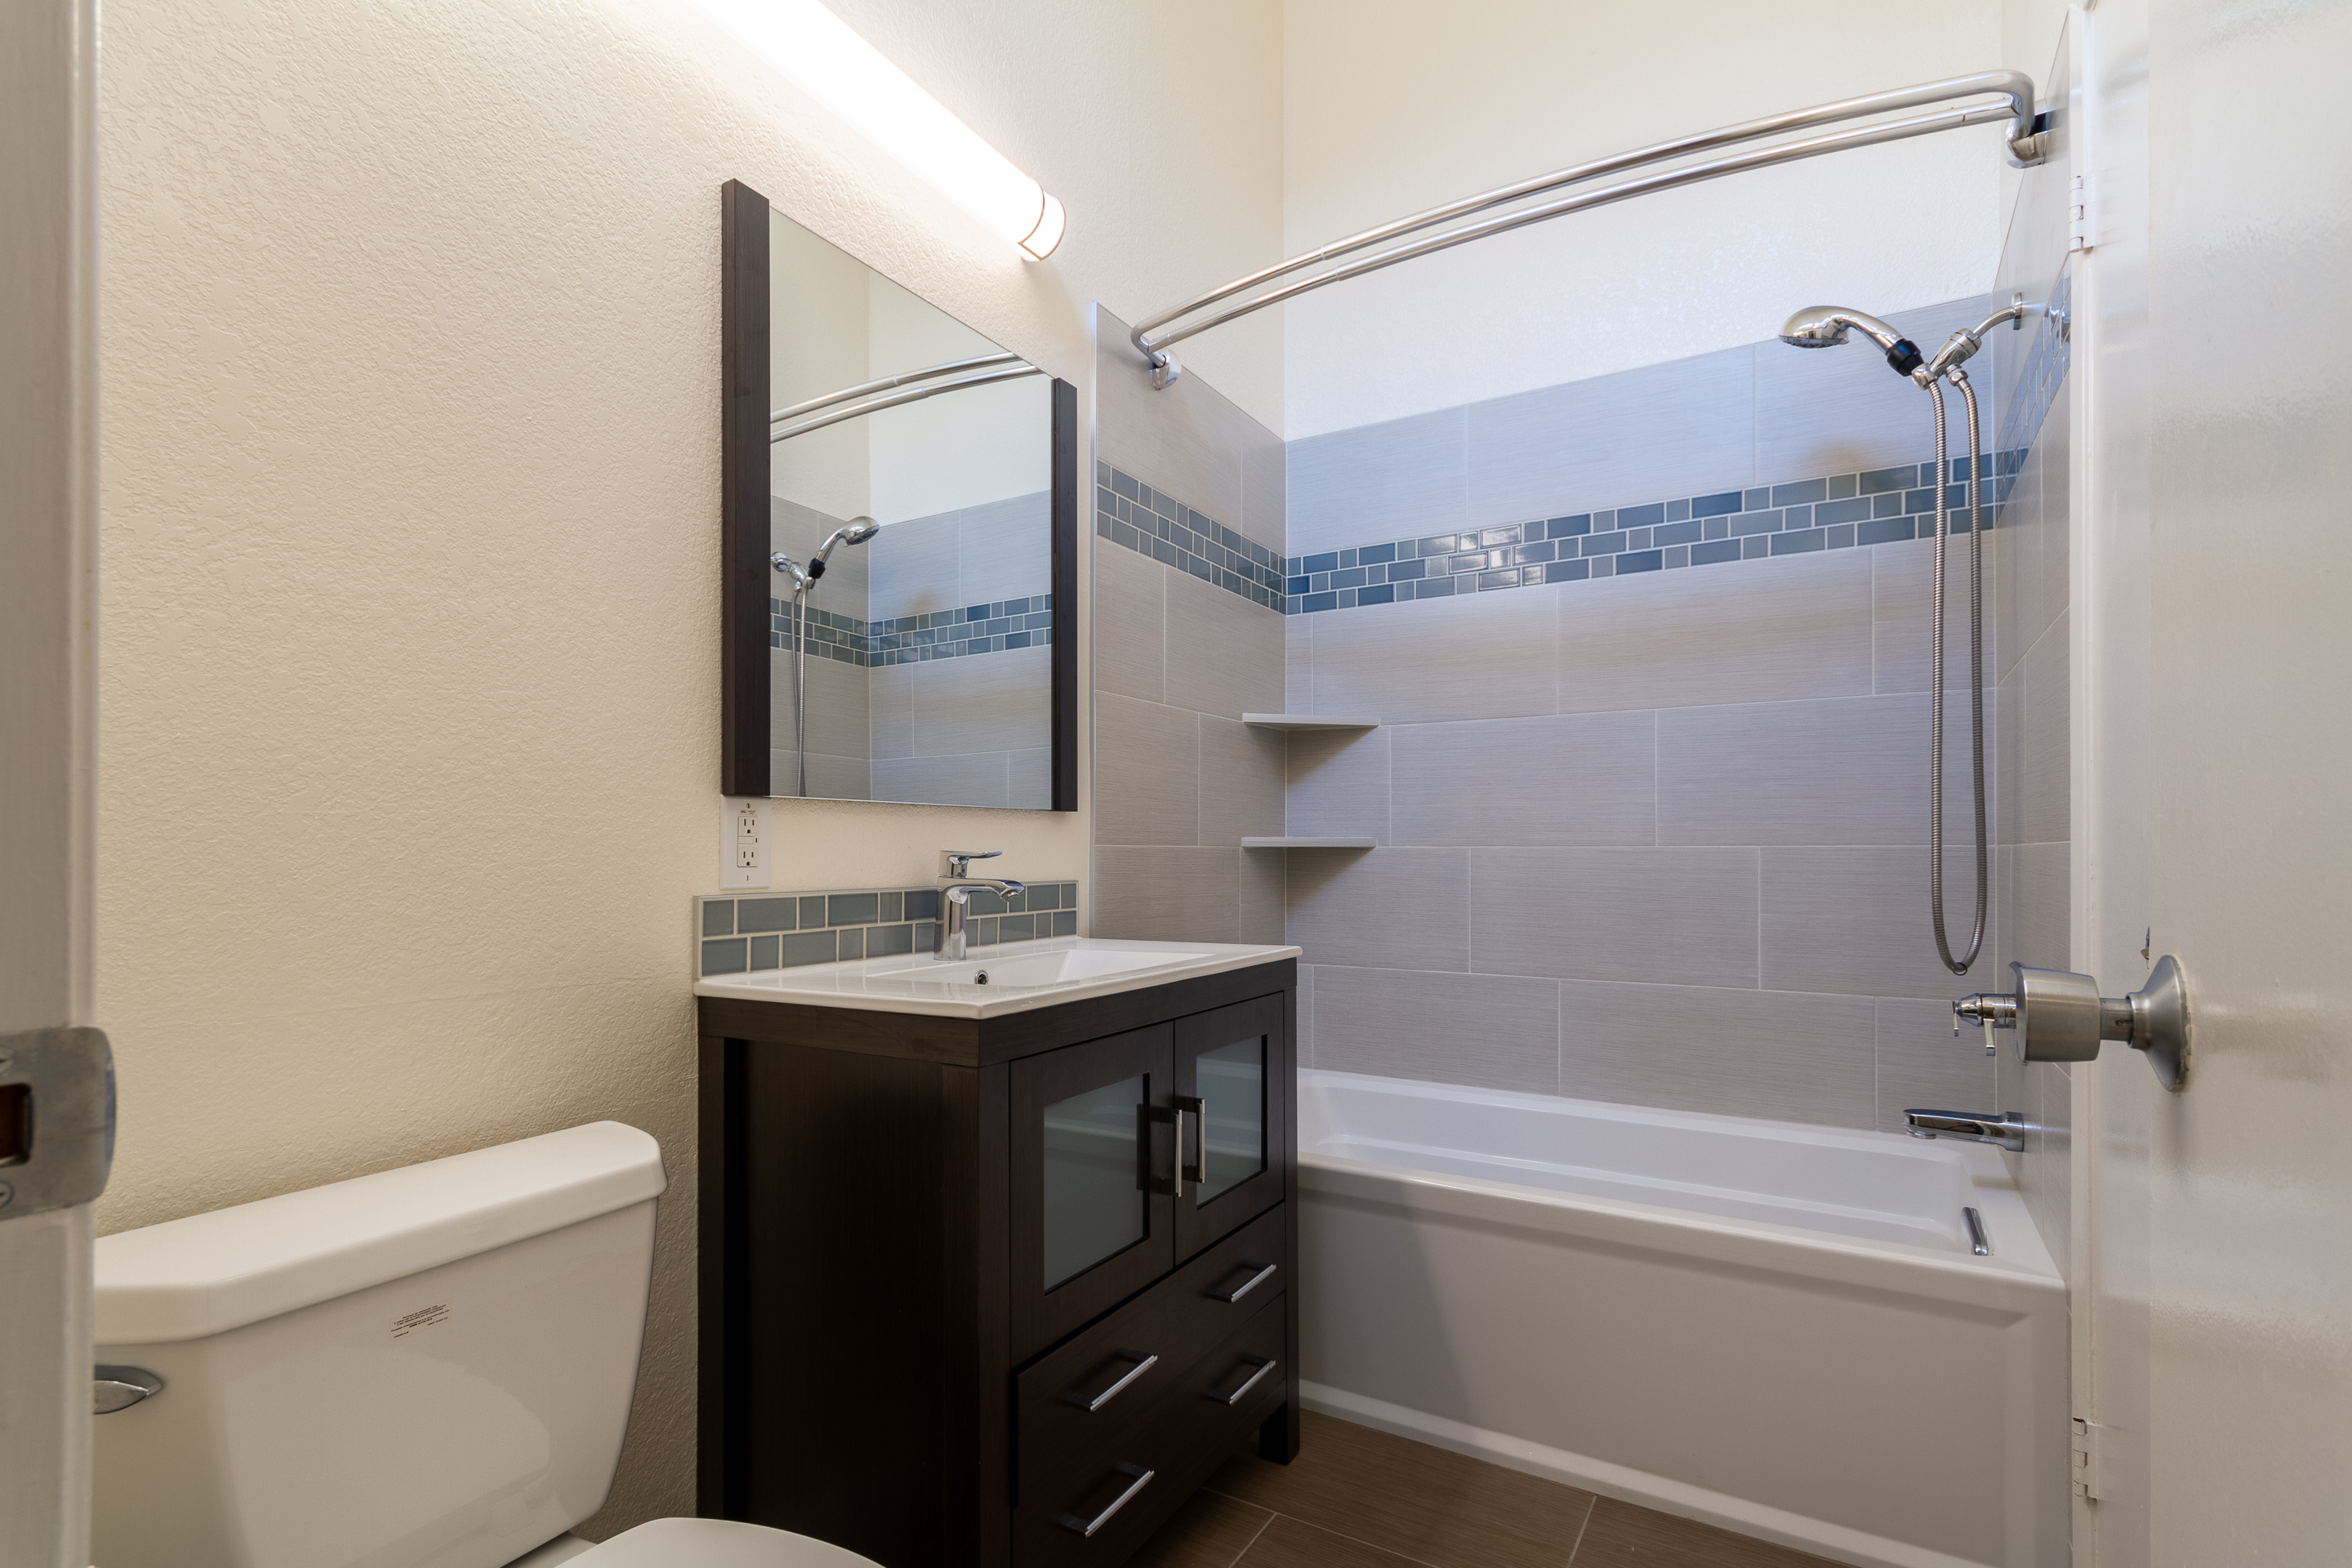 3485 Bridgewood Ter, #204, Fremont, CA 94536 - New home for sale in Union City Sunil Sethi Real Estate